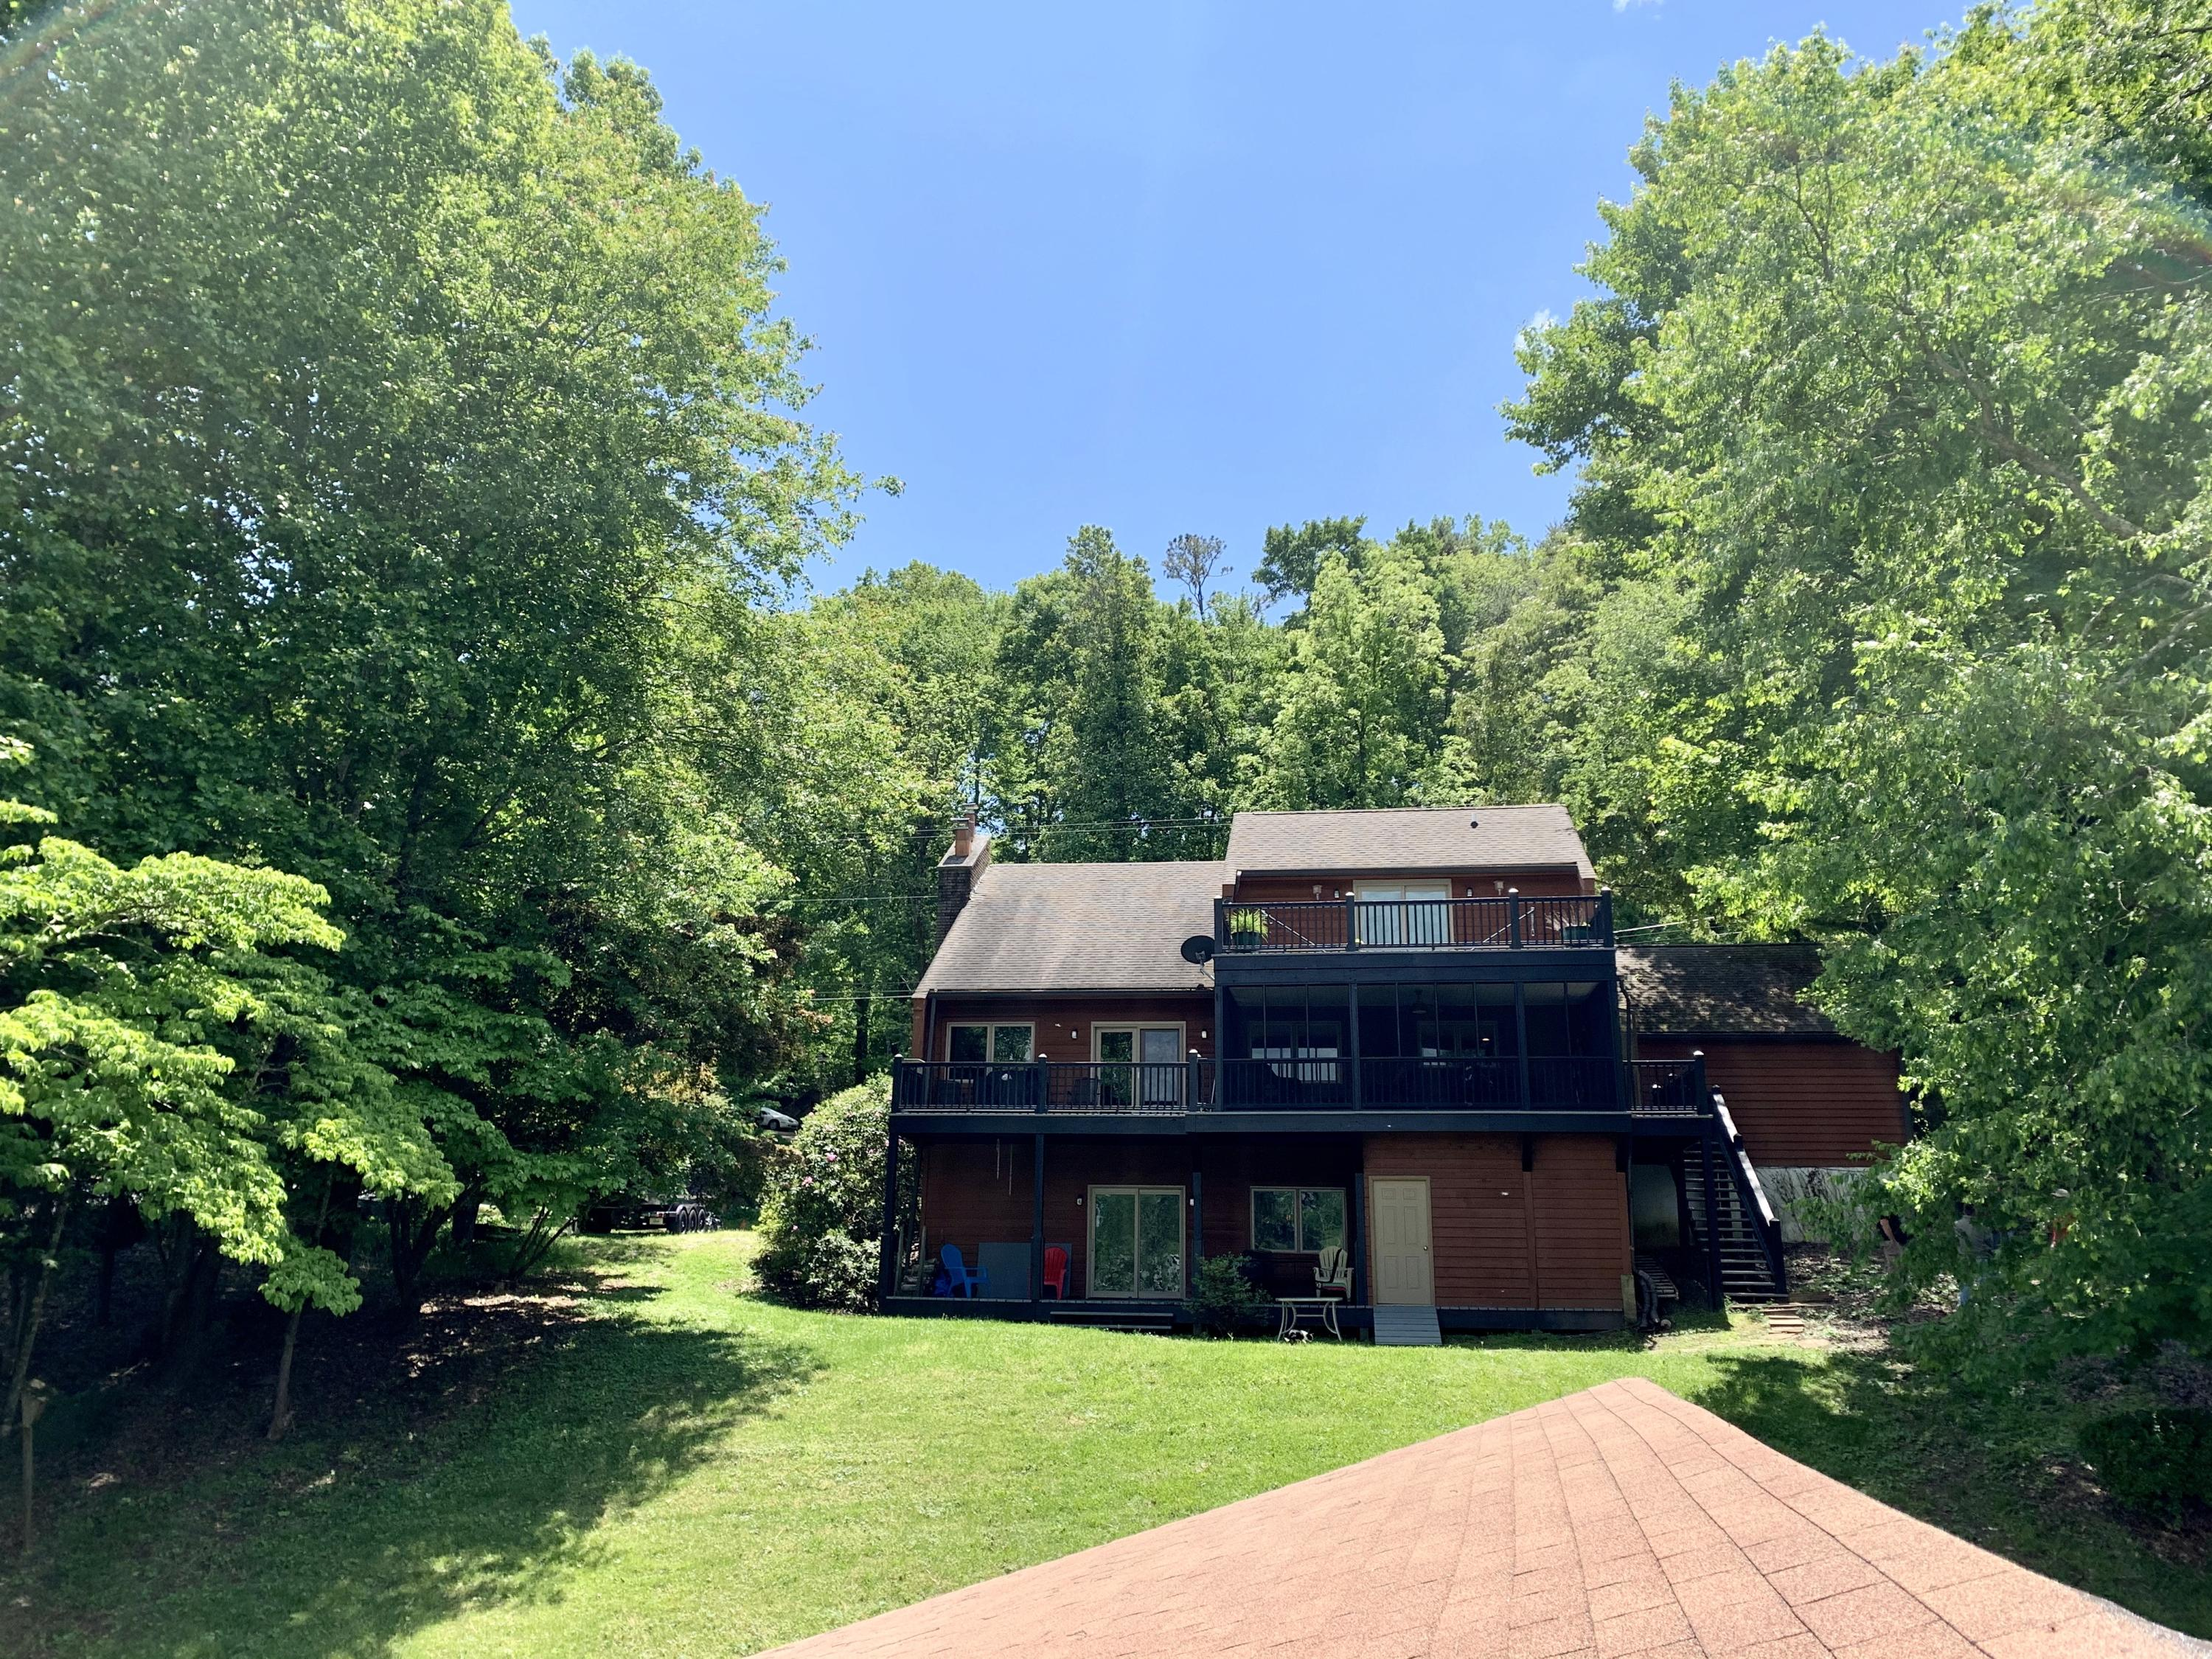 1505 Brooksview Rd: